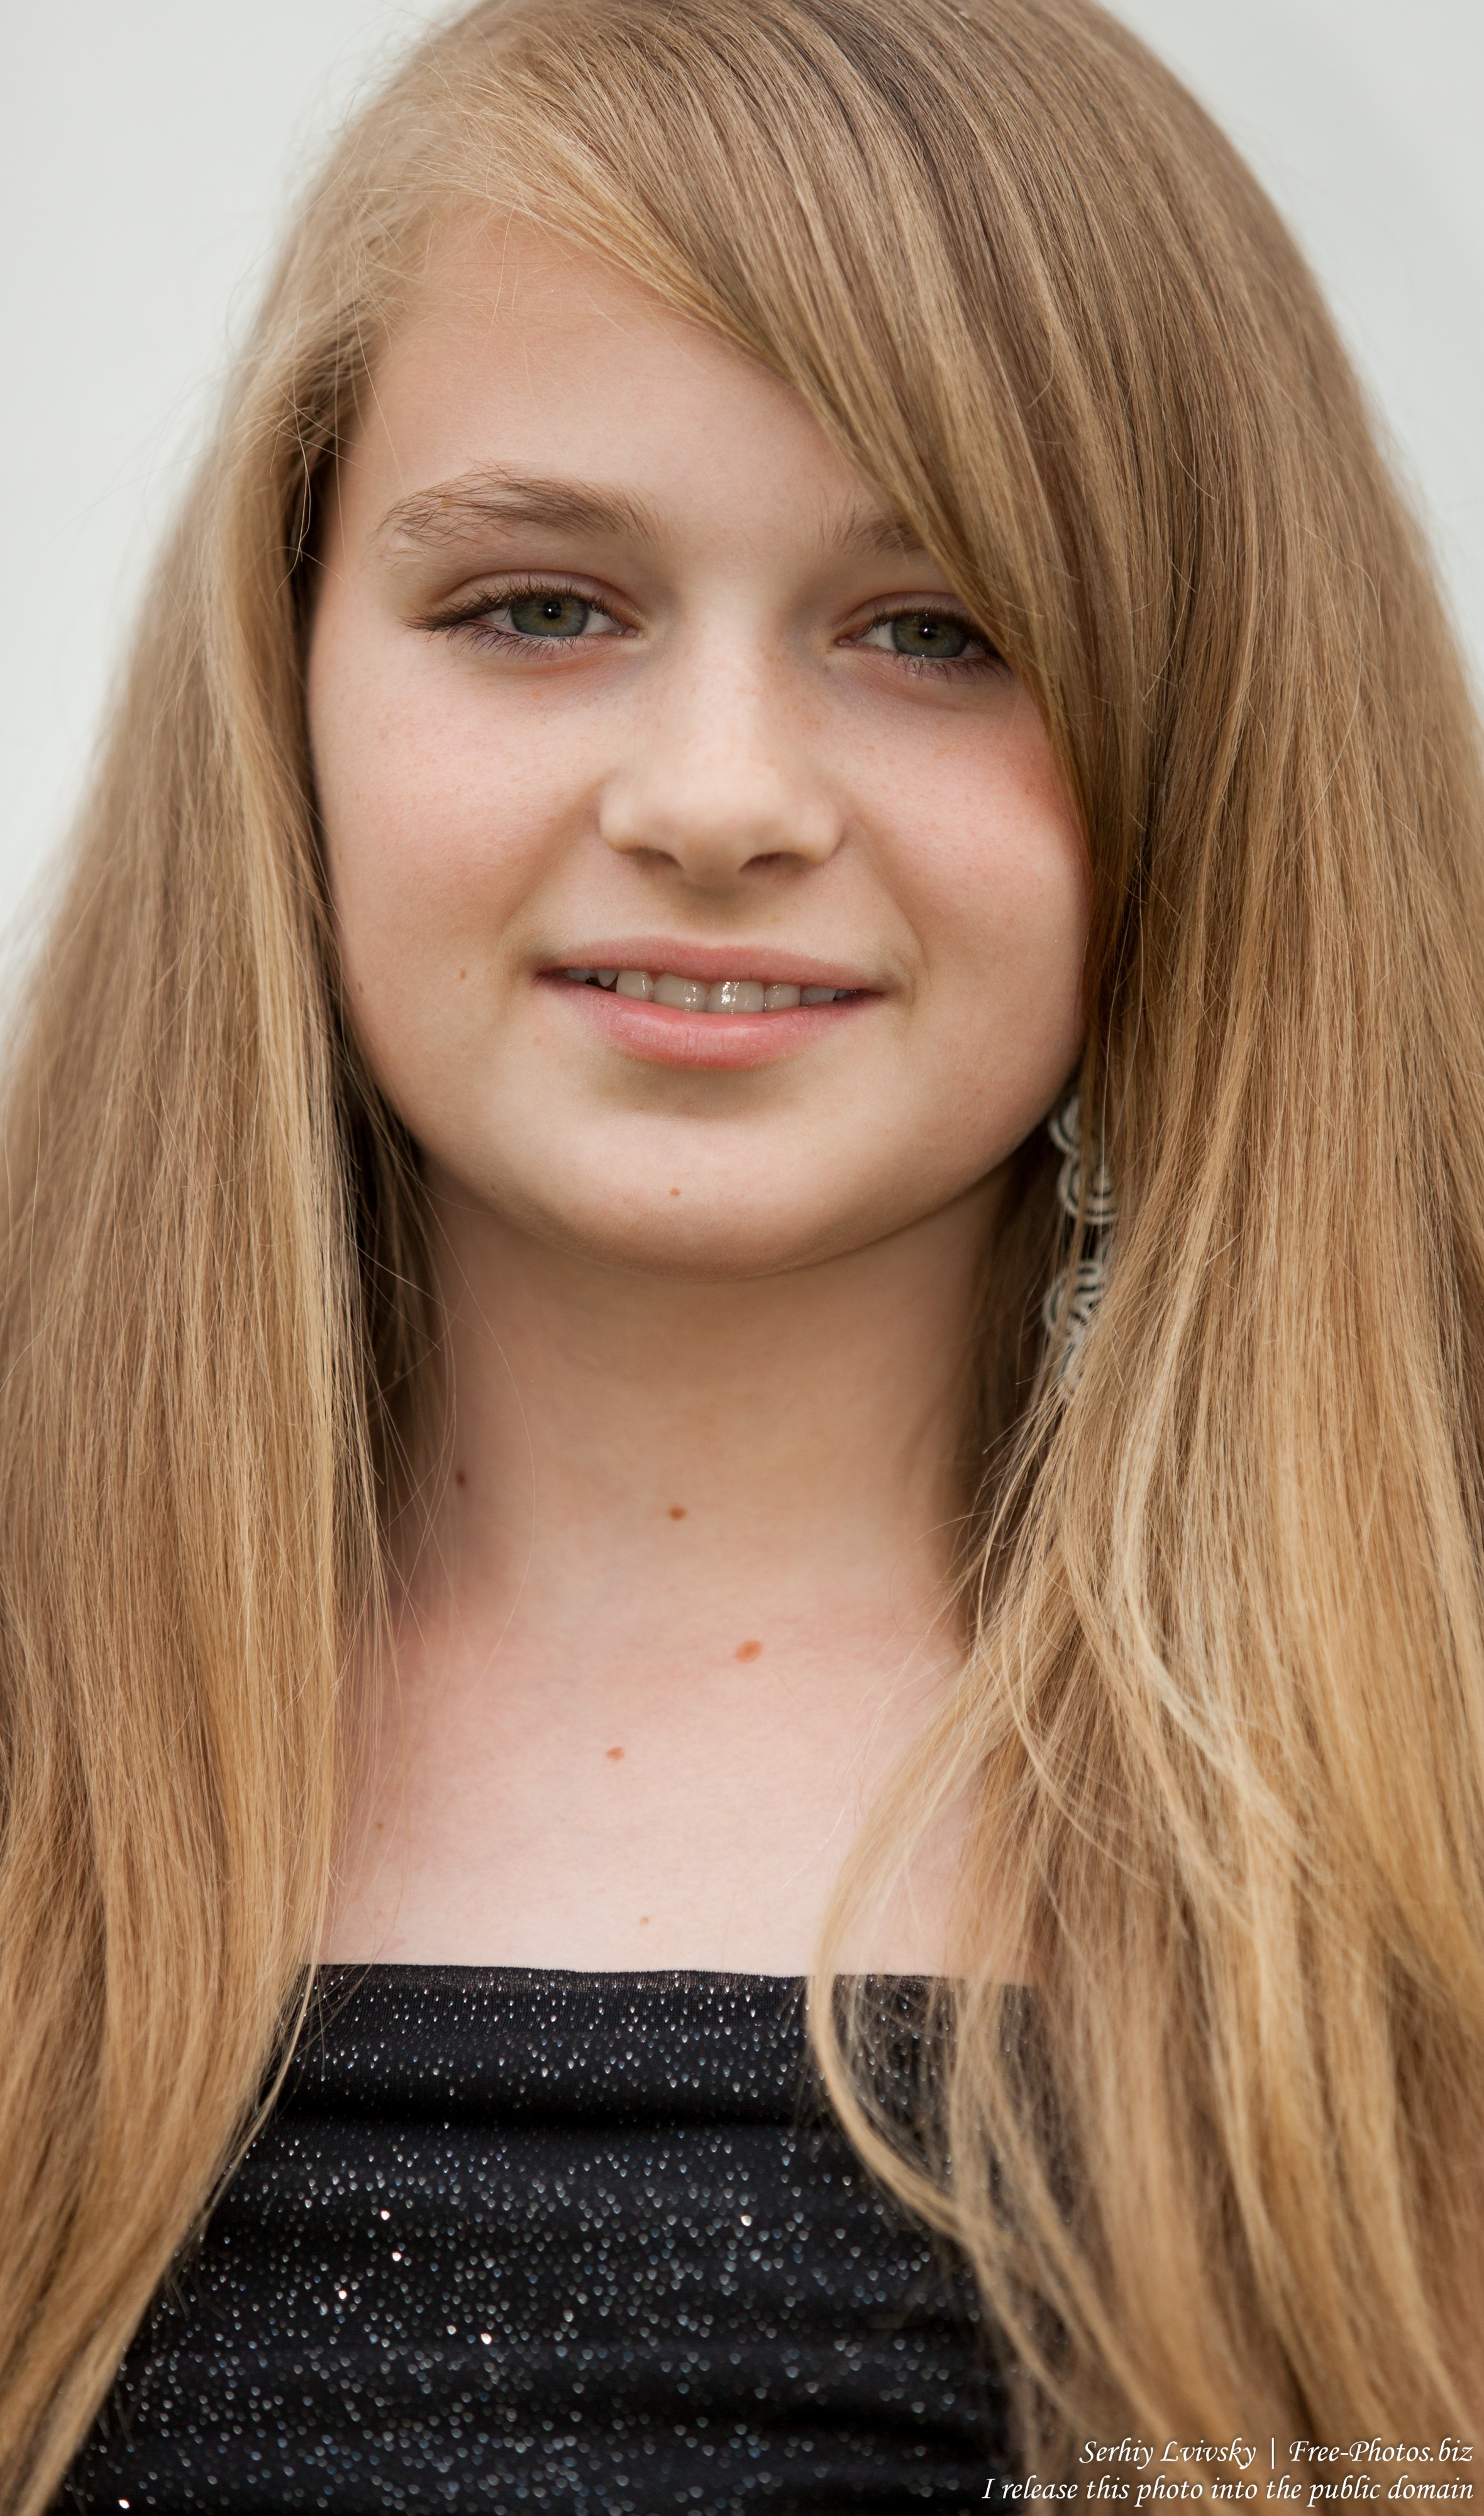 a blond 13-year-old girl photographed in June 2015, picture 10